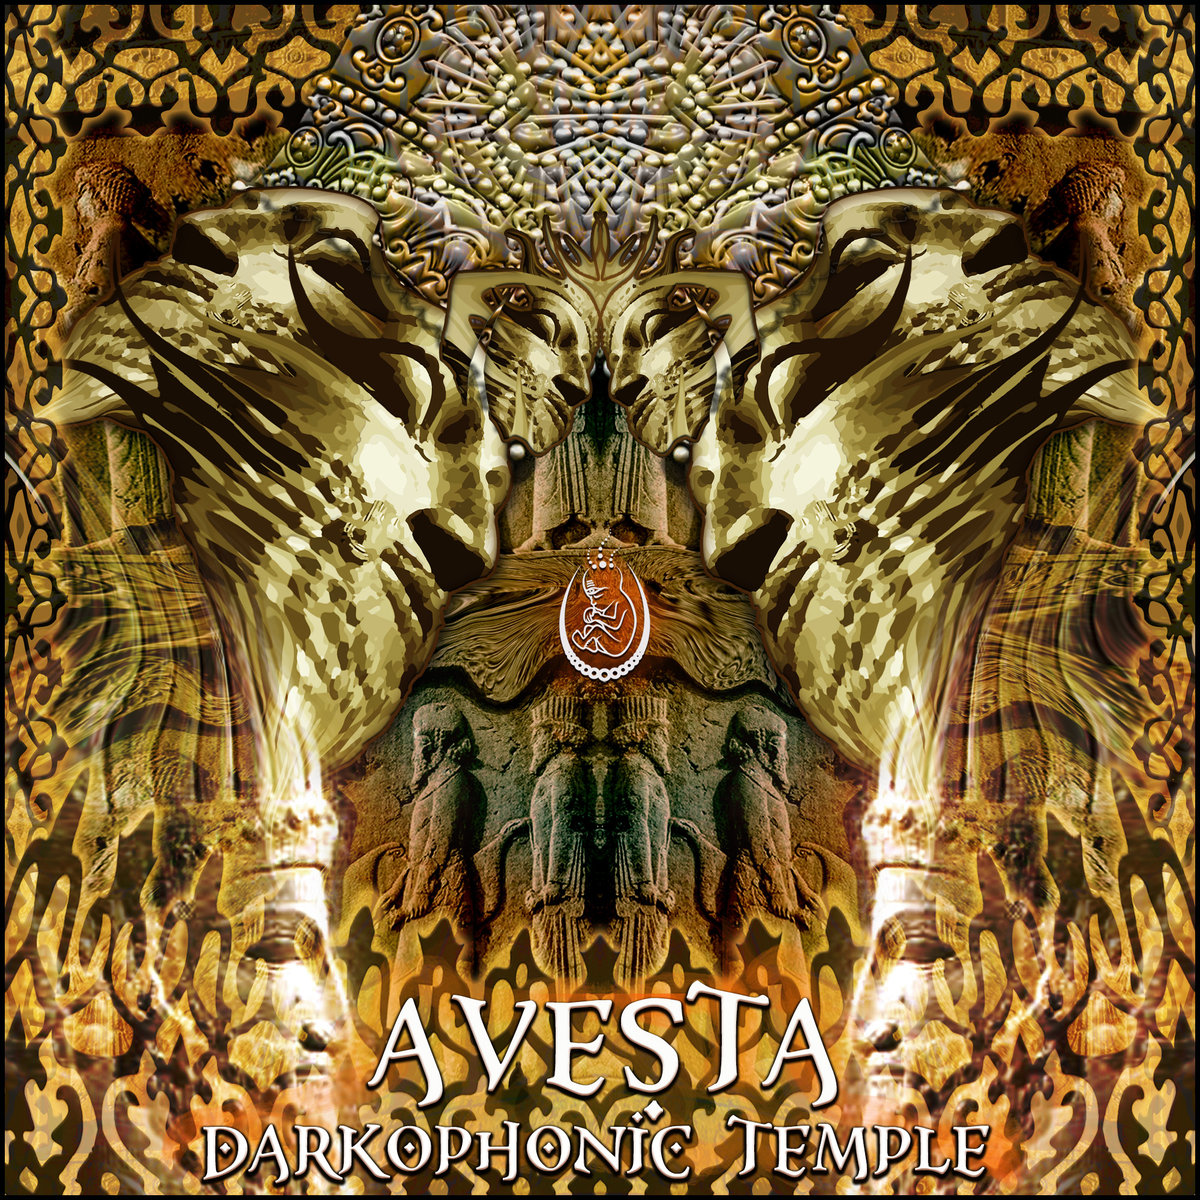 Darkophonic Temple - Darkology @ 'Avesta' album (ambient, electronic)